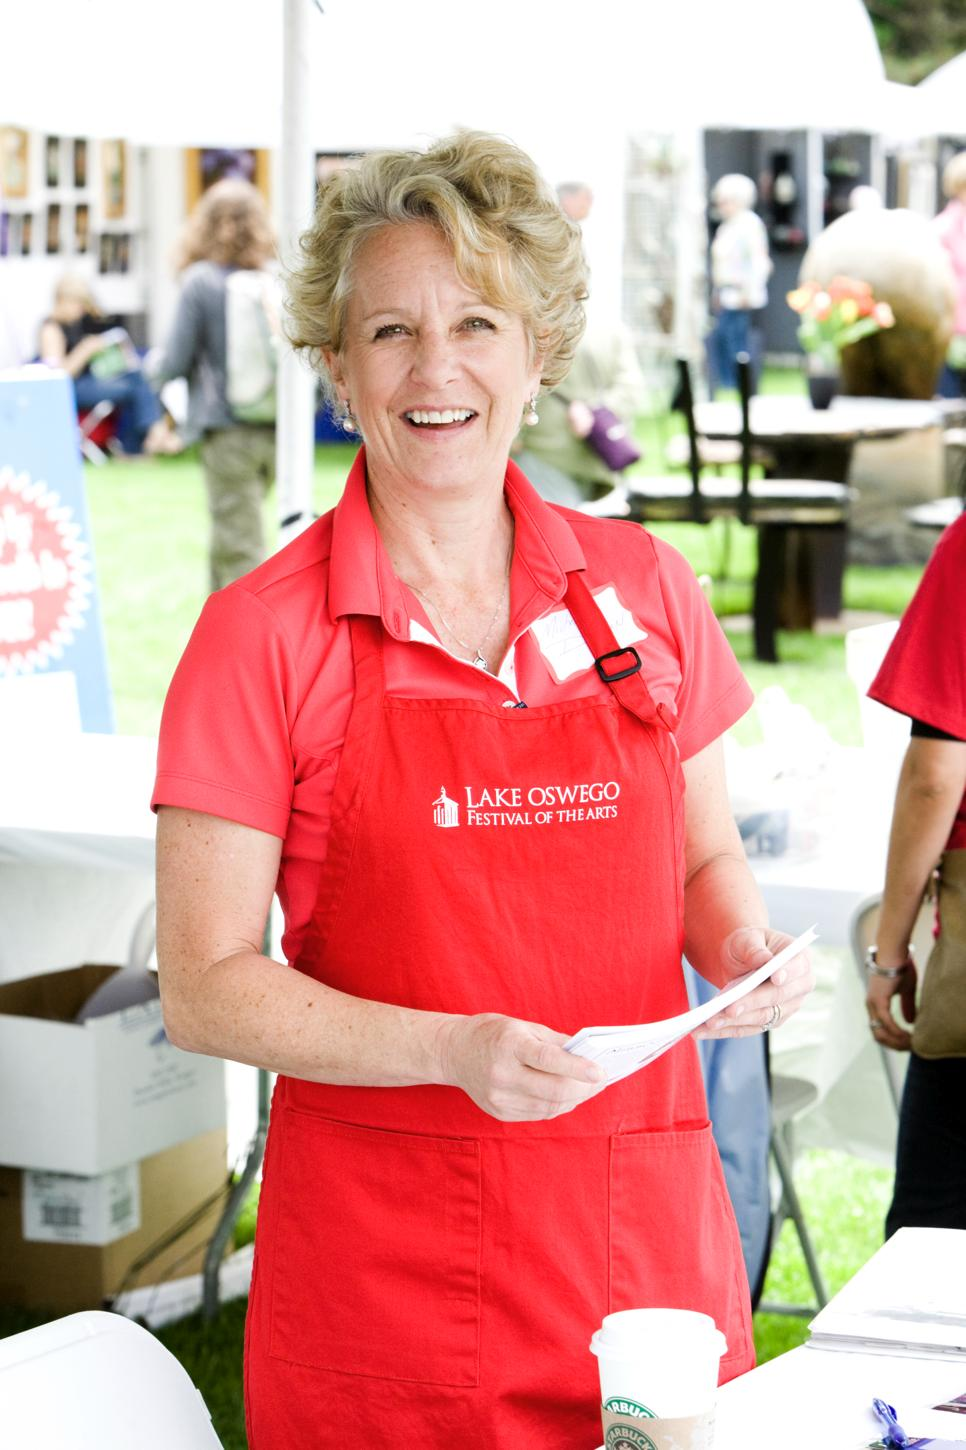 Volunteers for Lake Oswego Festival of Arts